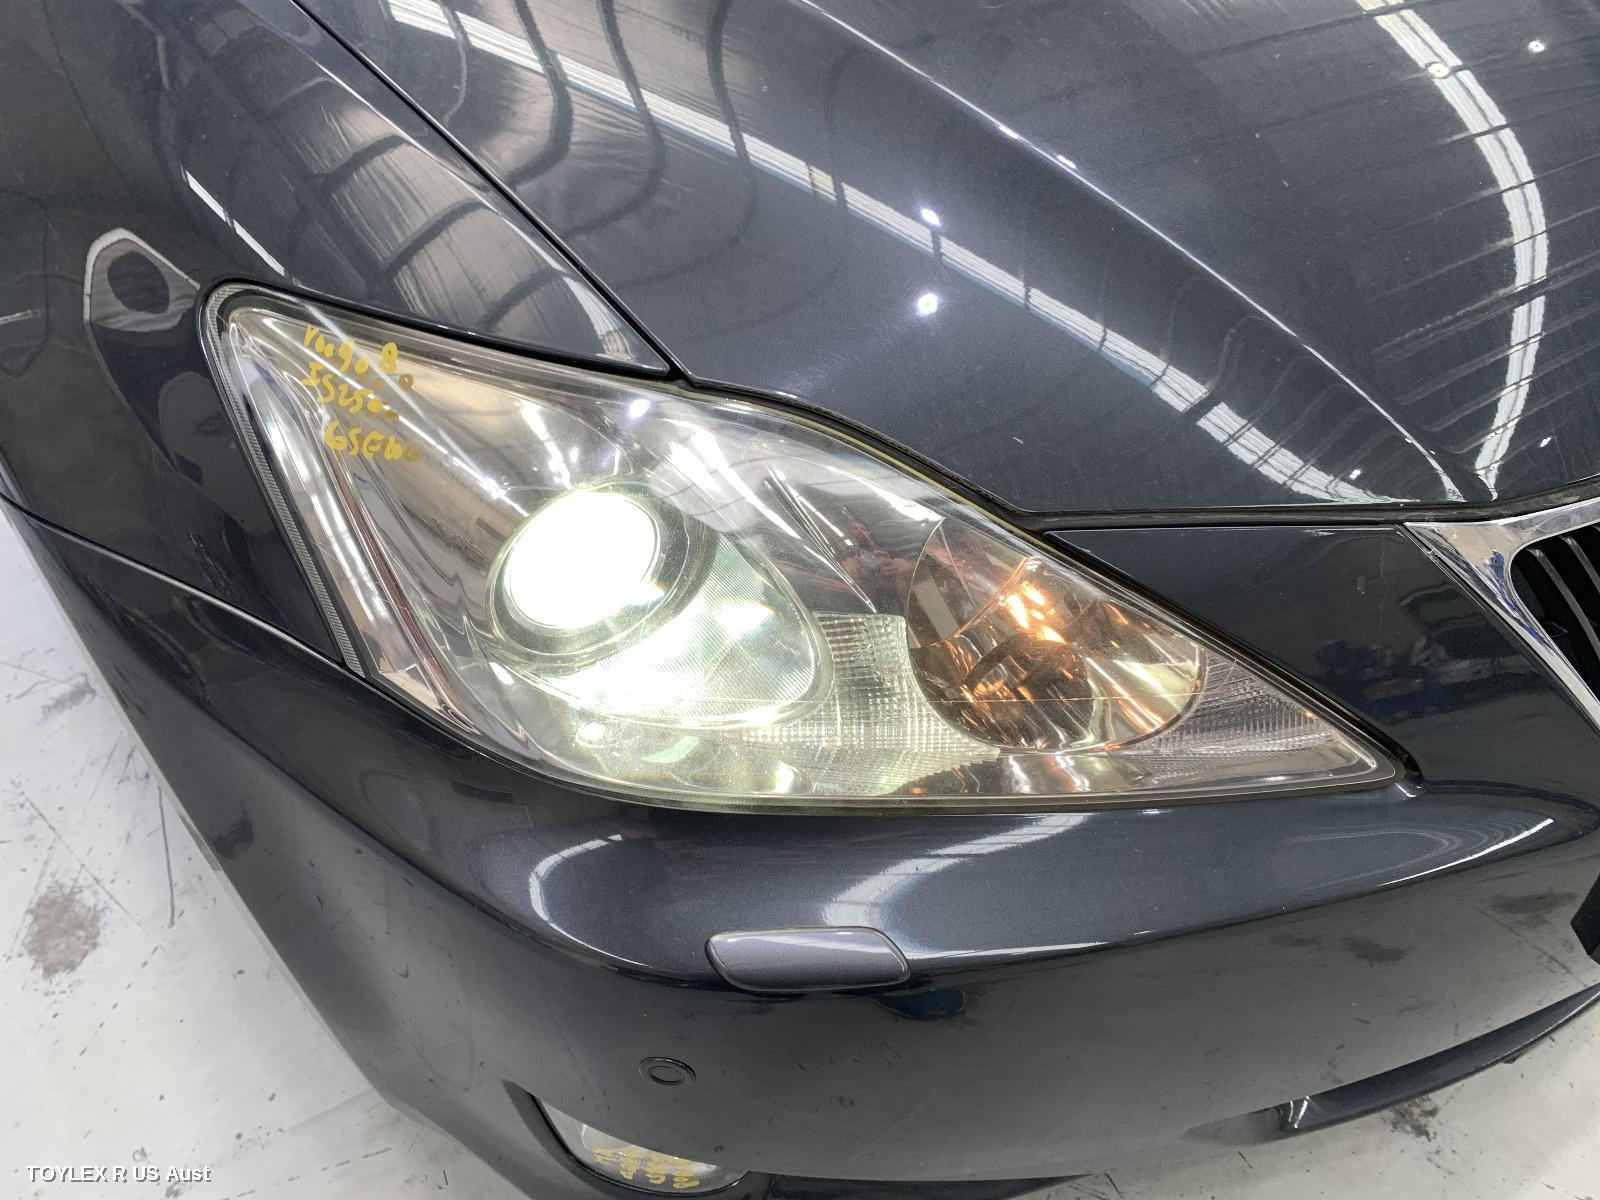 LEXUS IS250/IS250C, Right Headlamp, IS250, GSE20R, XENON TYPE, 11/05-09/10